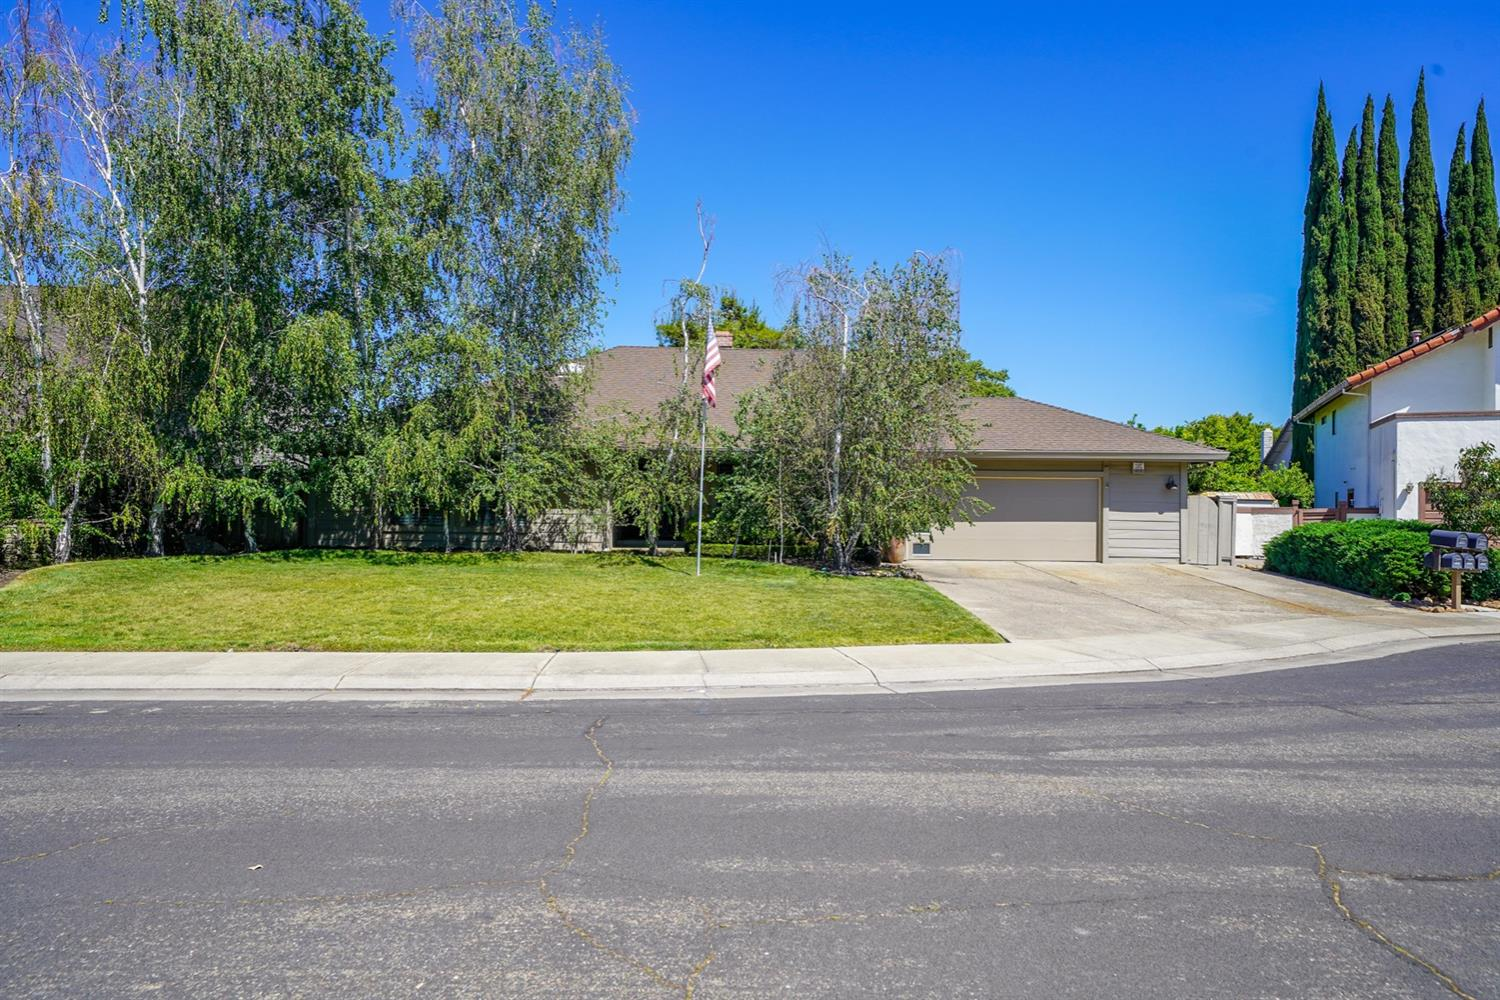 Photo of 1717 Fluetsch Court, Stockton, CA 95207